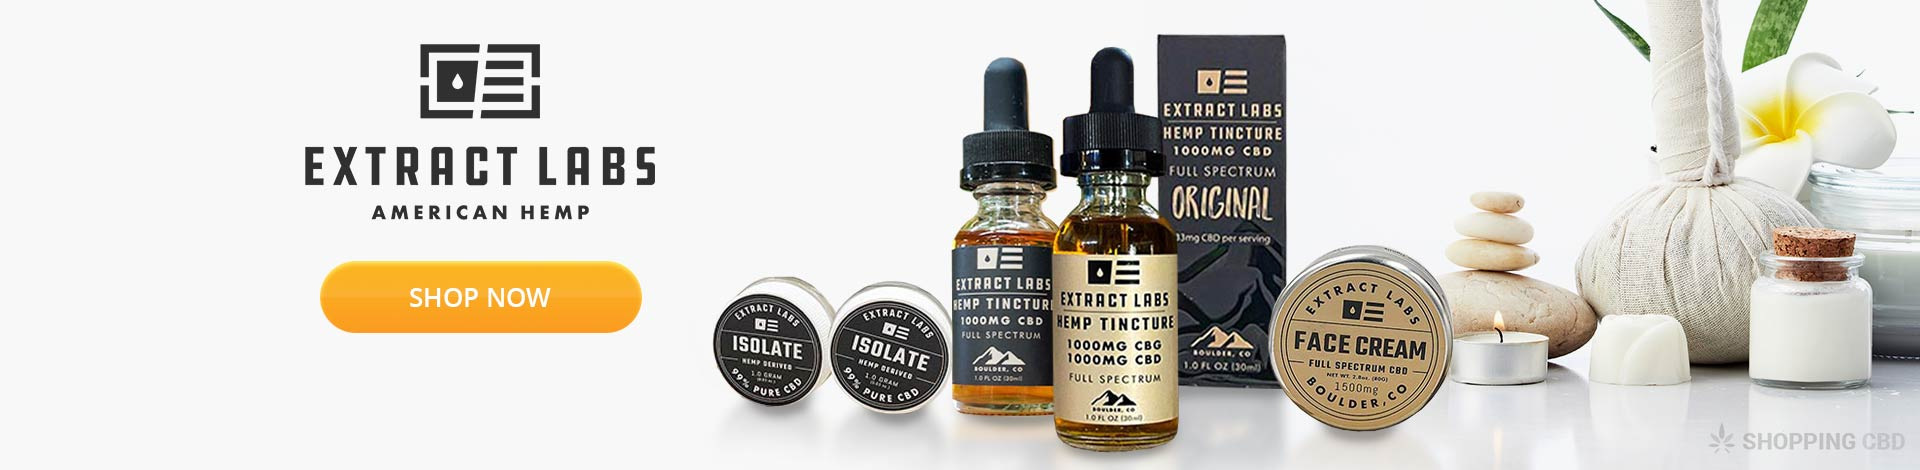 Extract Labs CBD Review [Essential Things to Know]